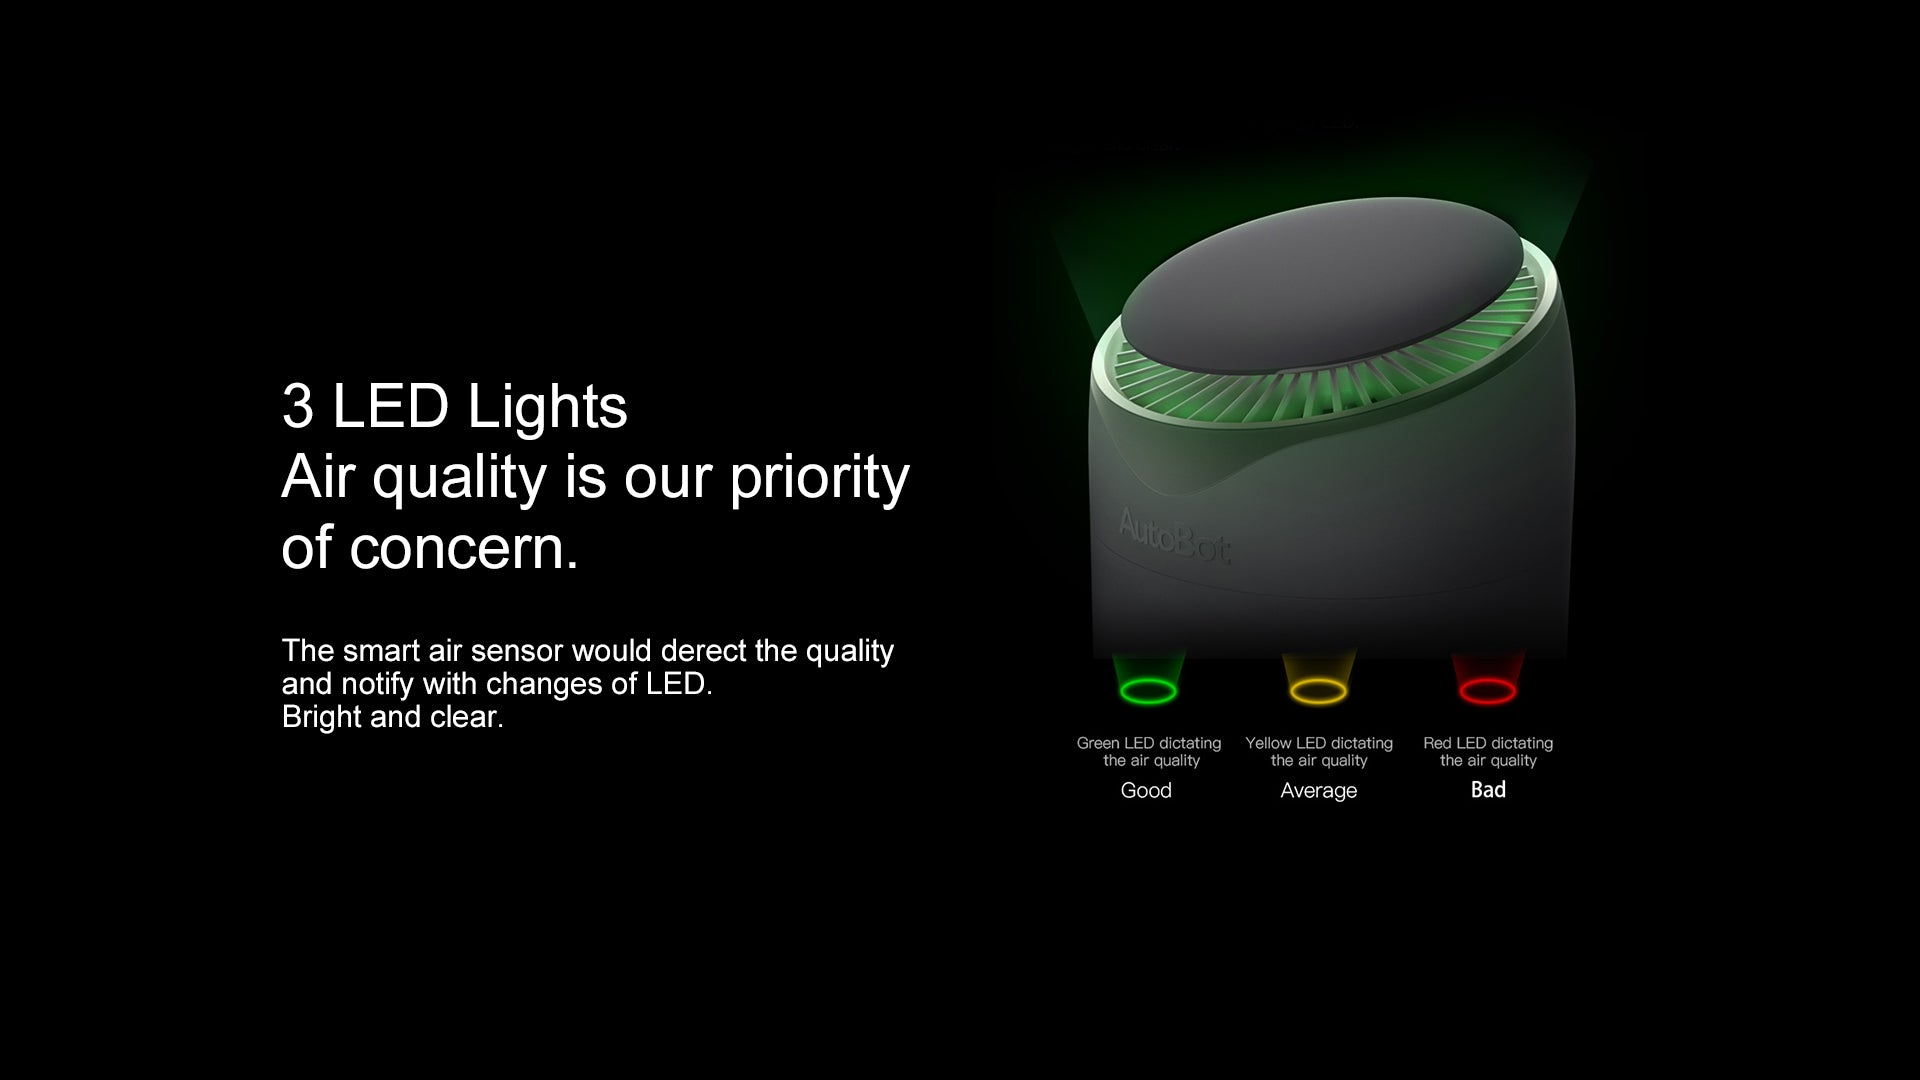 3 LED Lights Air quality is our priority of concern